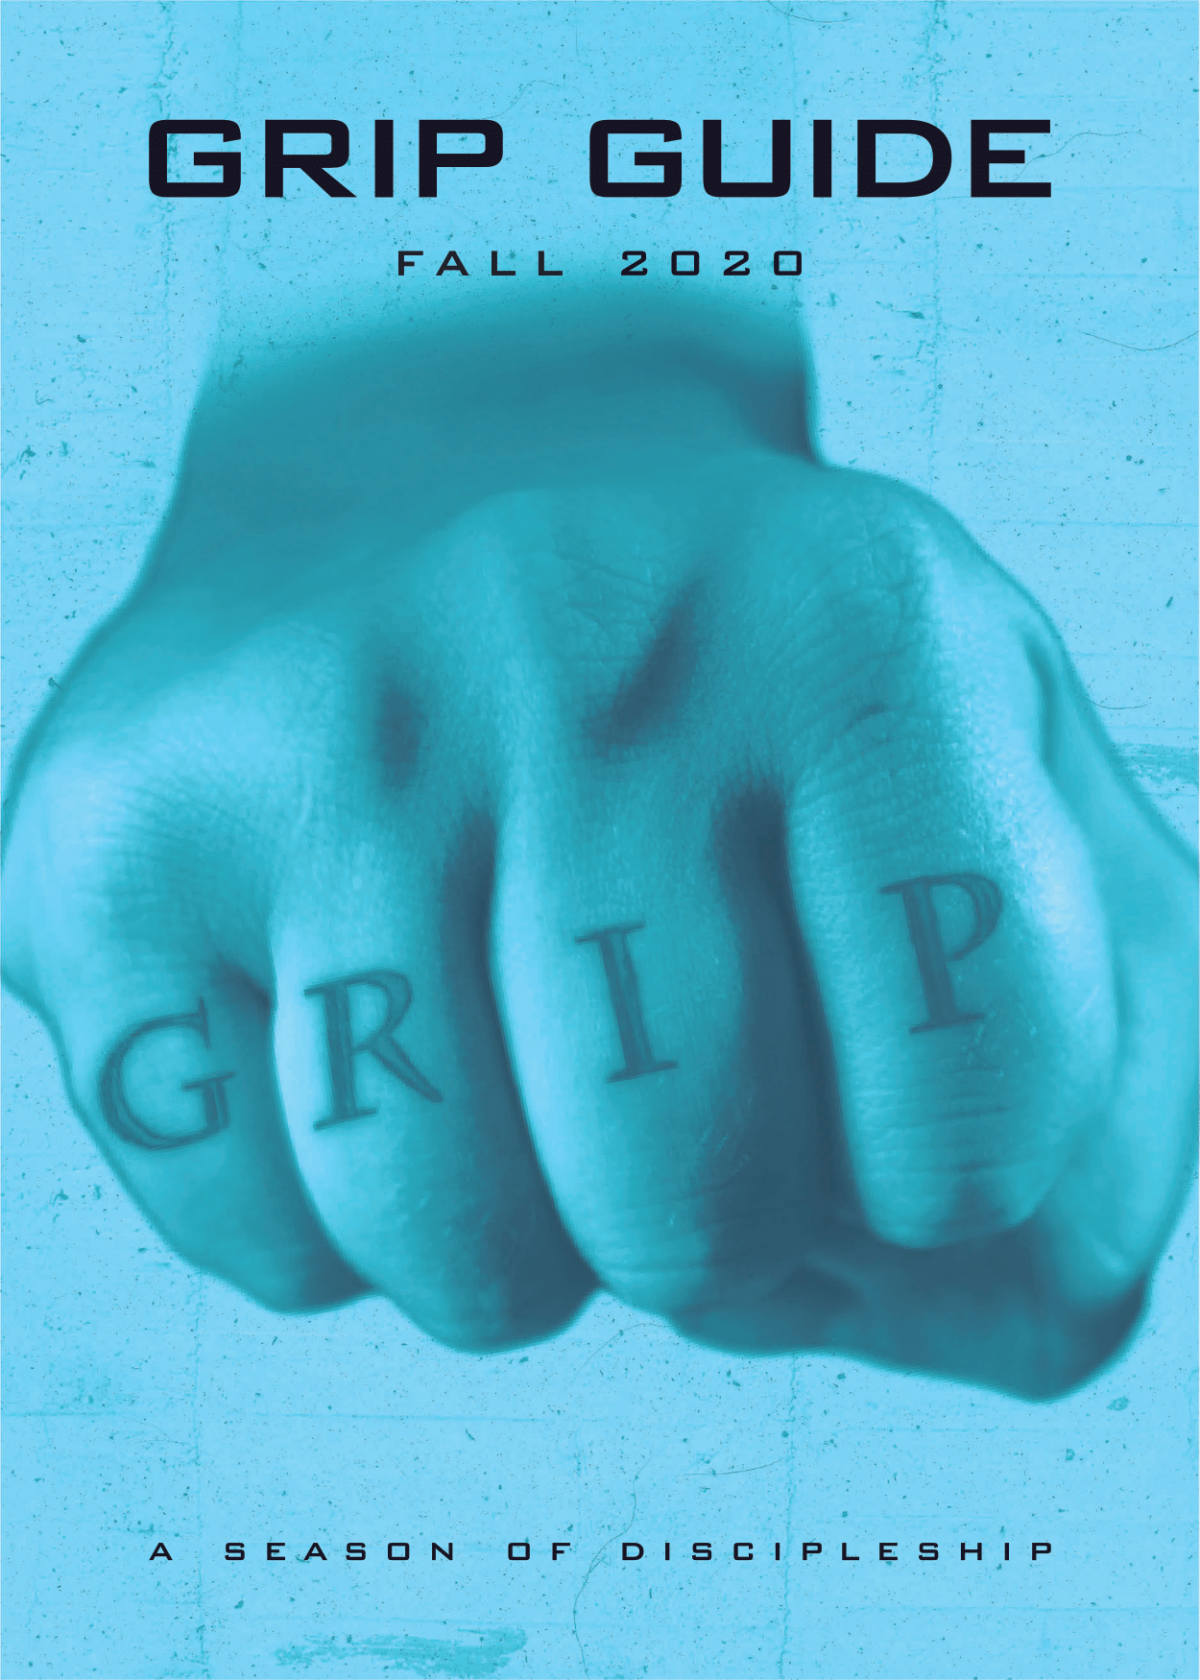 GRIP Guide Fall 2020